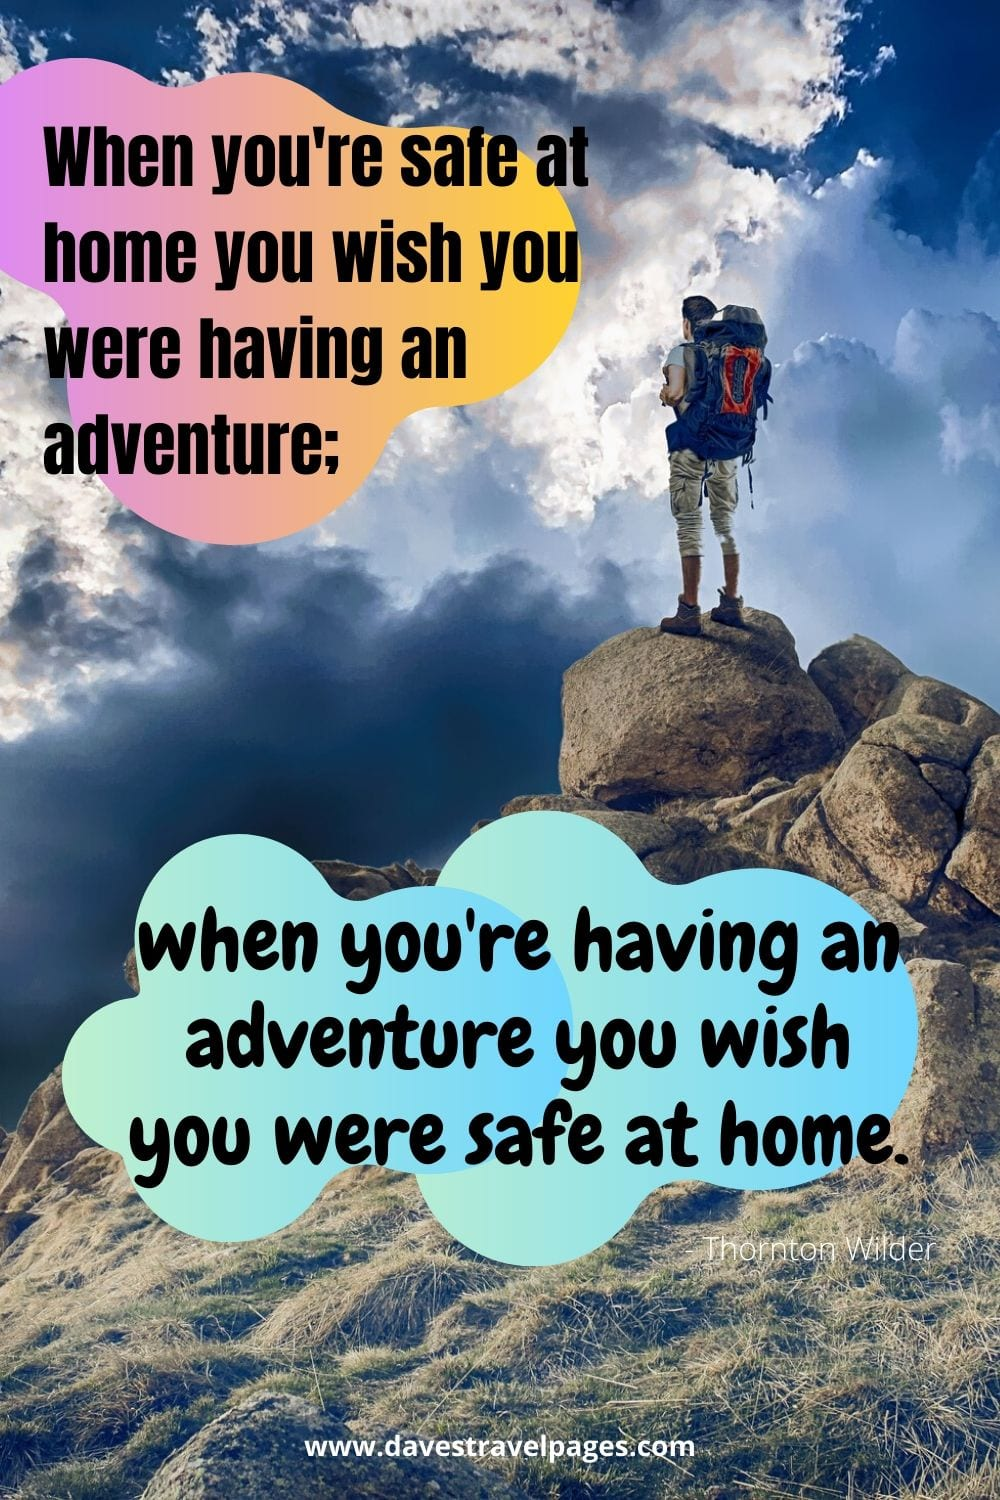 Adventure Captions - When you're safe at home you wish you were having an adventure; when you're having an adventure you wish you were safe at home. - Thornton Wilder